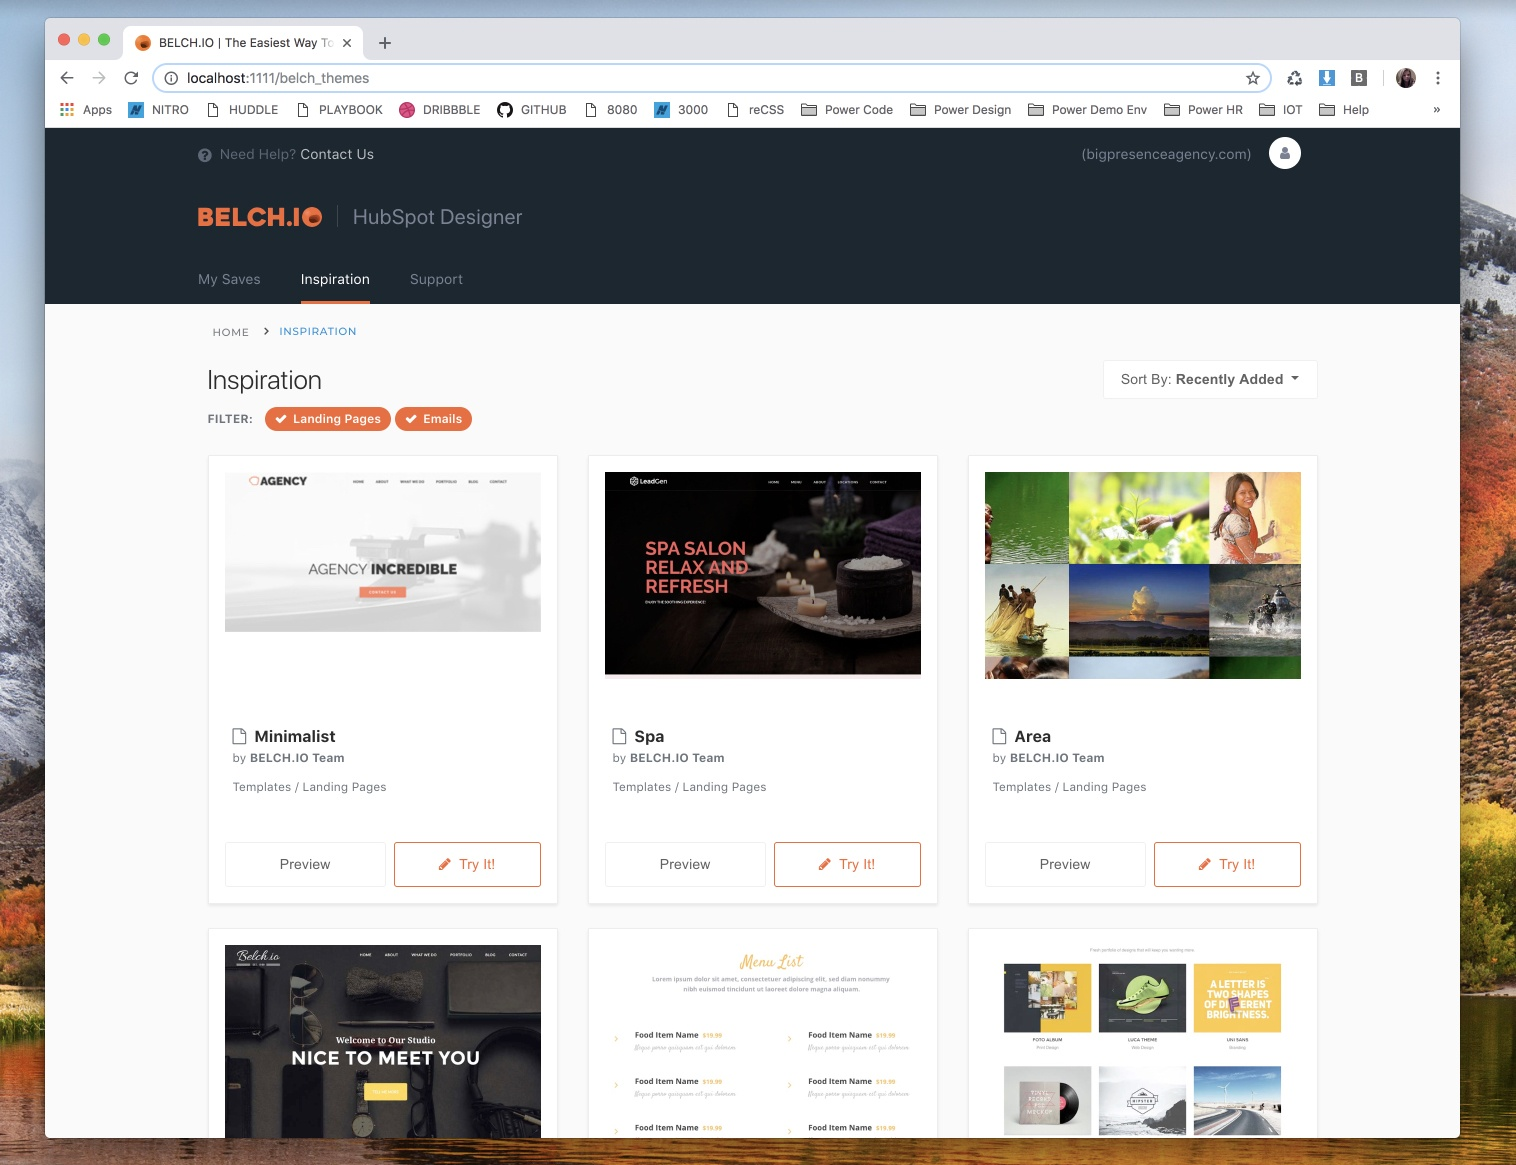 3329834598_BELCH.IO - The Easiest Way To Build For HubSpot 2018-09-13 13-21-35